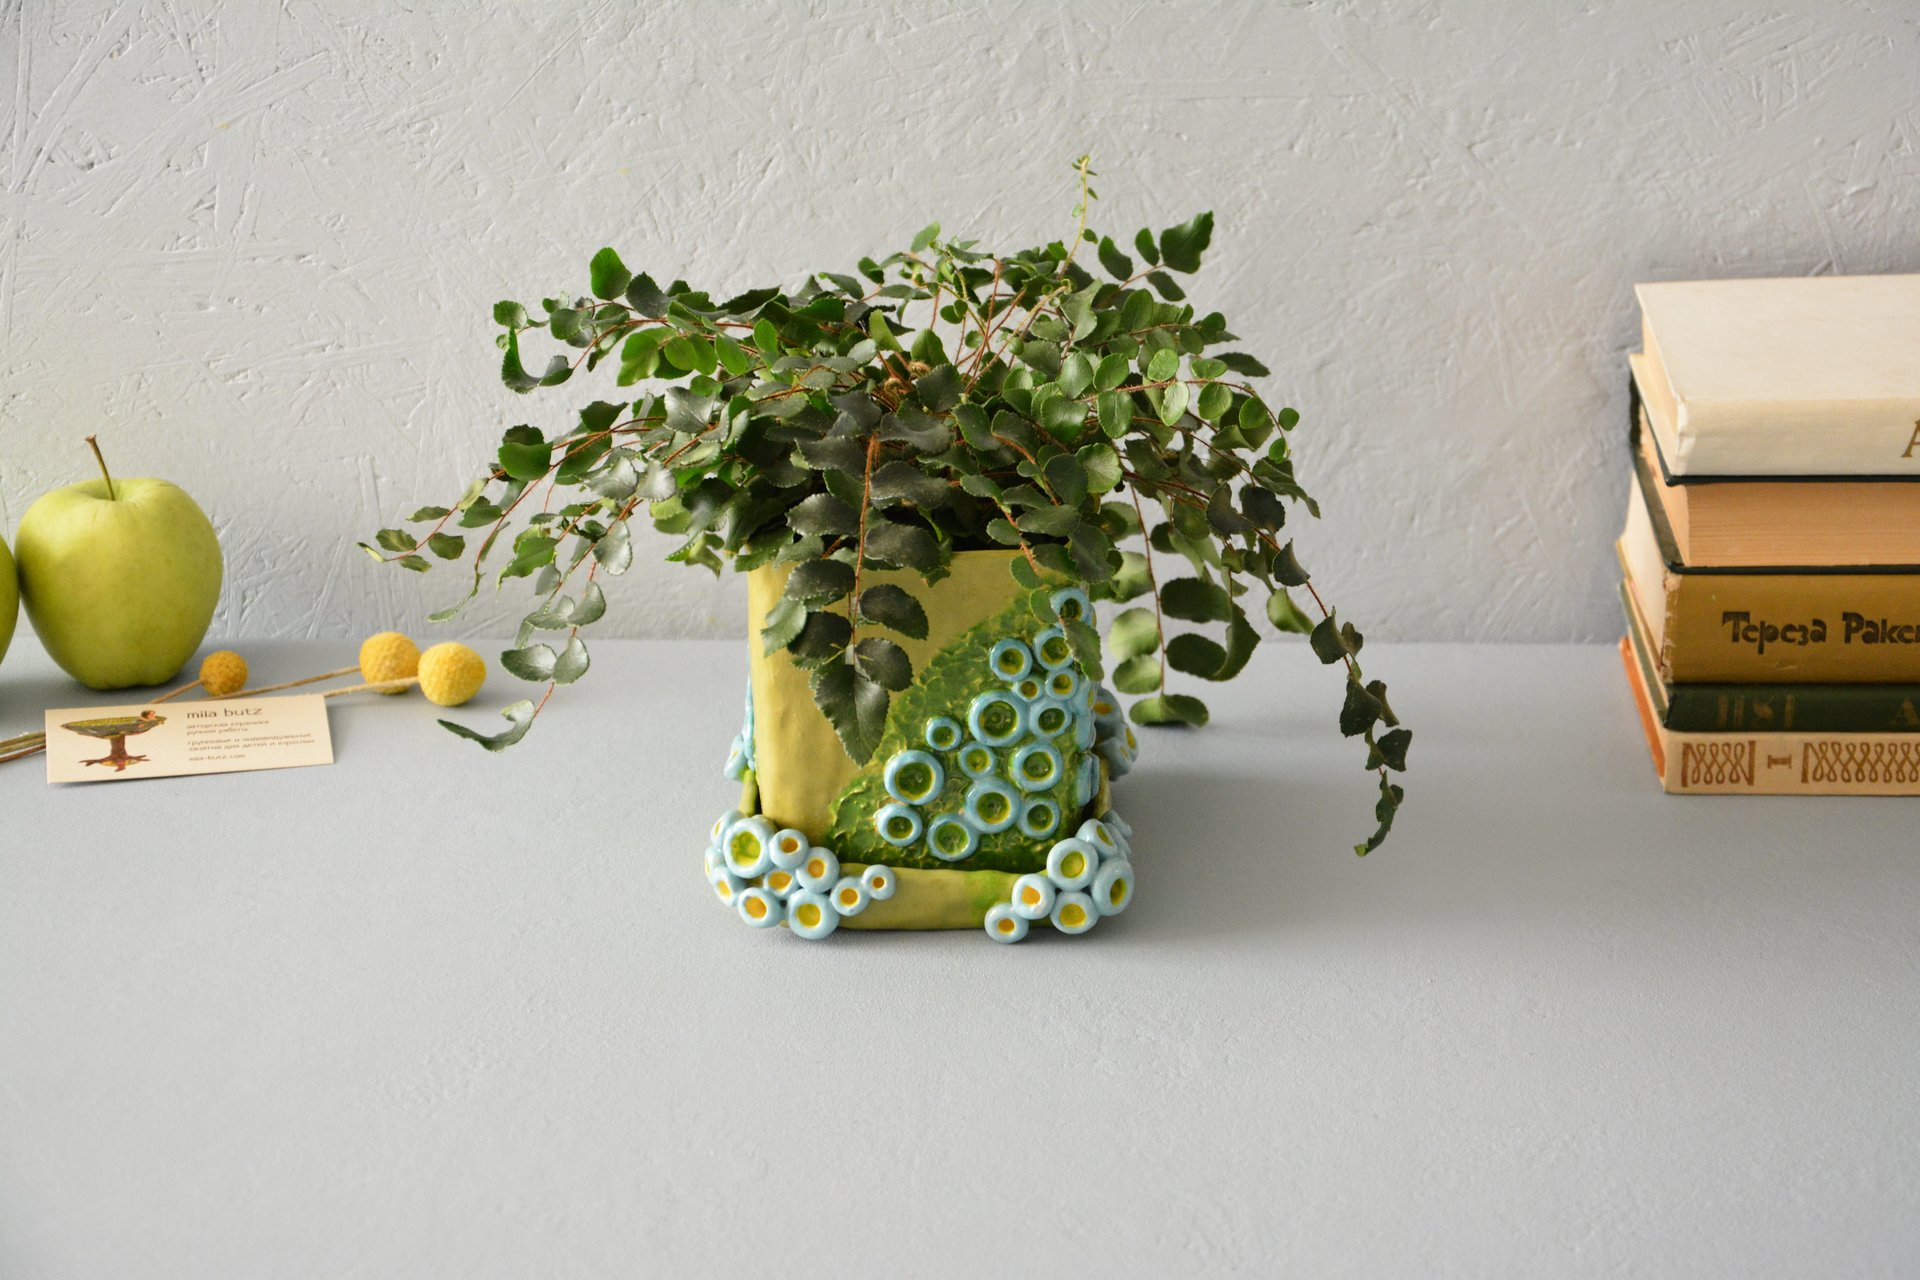 Flowers pot Green cube - Ceramic others utility, height - 12.5 cm, length-width 13 cm * 14 cm, photo 3 of 4.